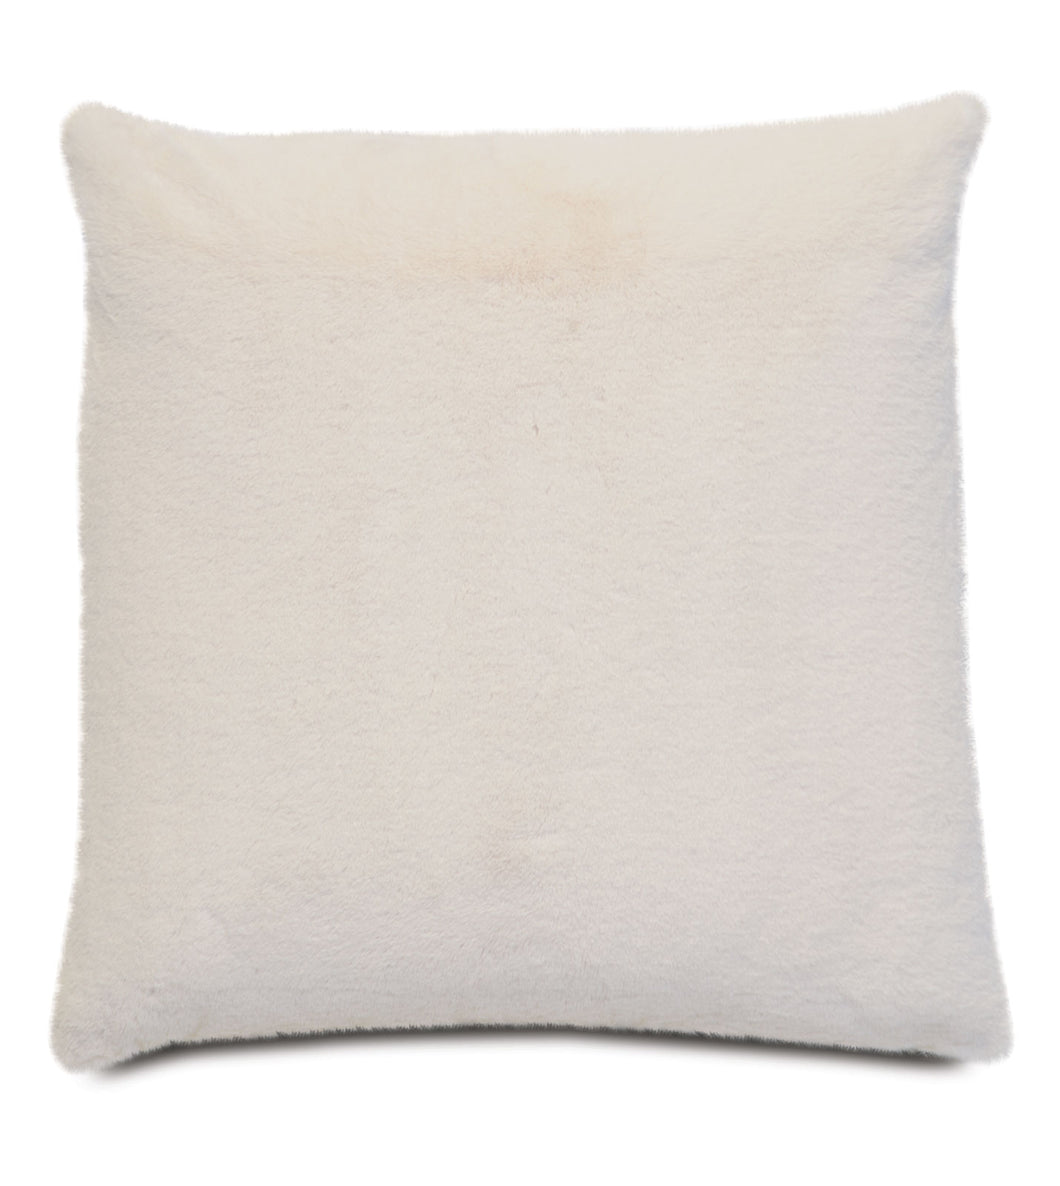 Ivory Lodge Solid Faux Fur Knife Edge Lumbar Pillow